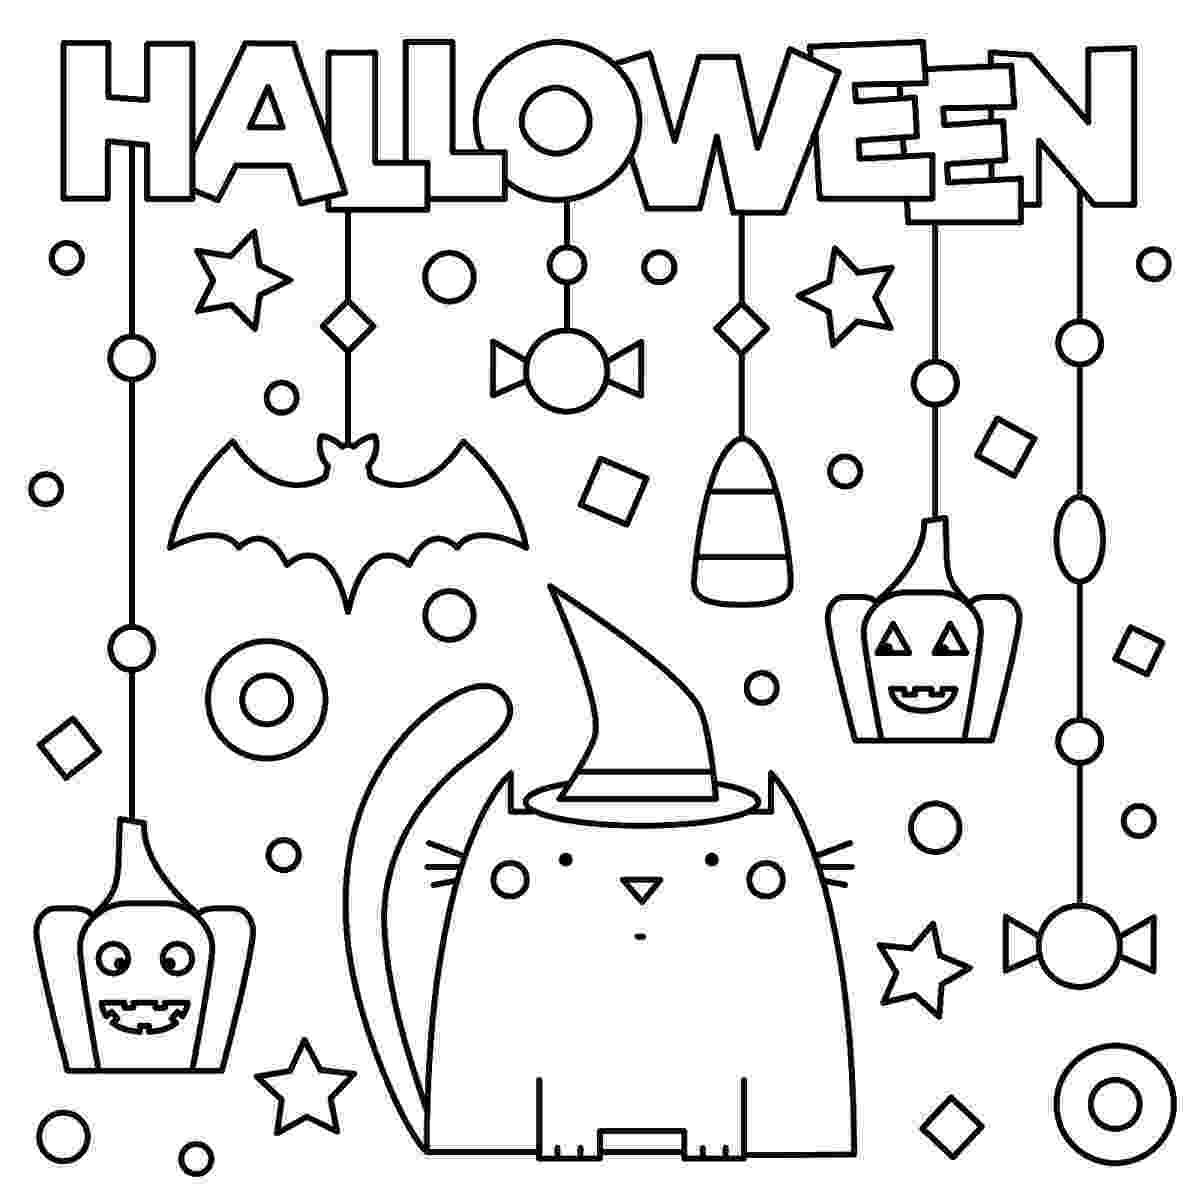 coloring page halloween printable halloween printable coloring pages minnesota miranda coloring halloween page printable